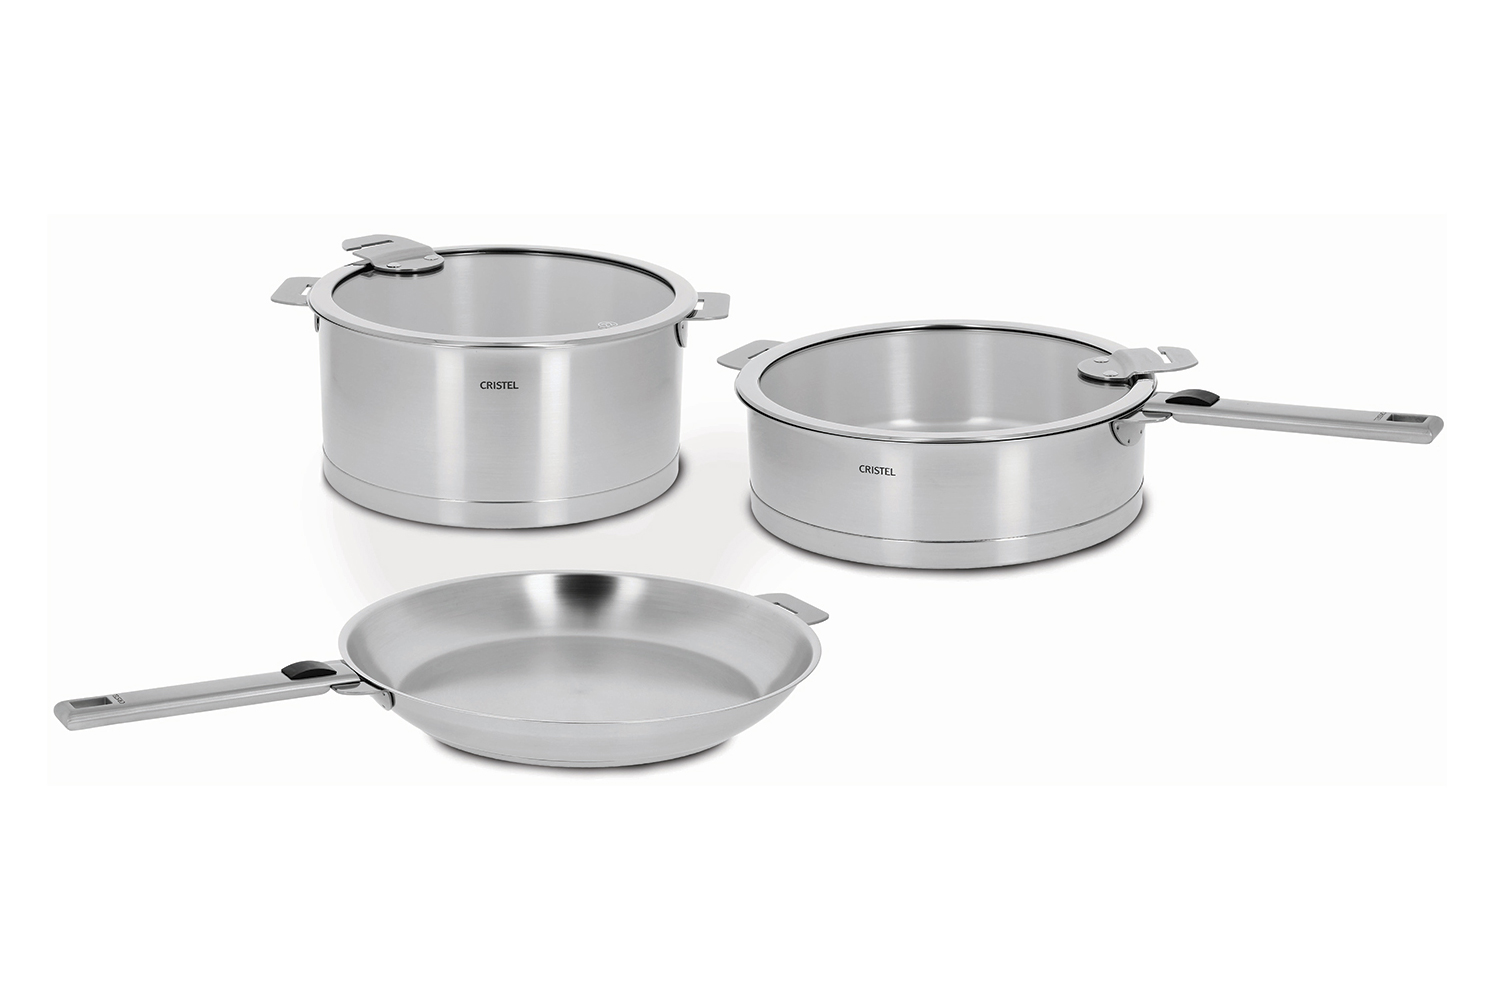 Cristel Strate Brushed Stainless 7 Piece Cookware Set, Removable Handle